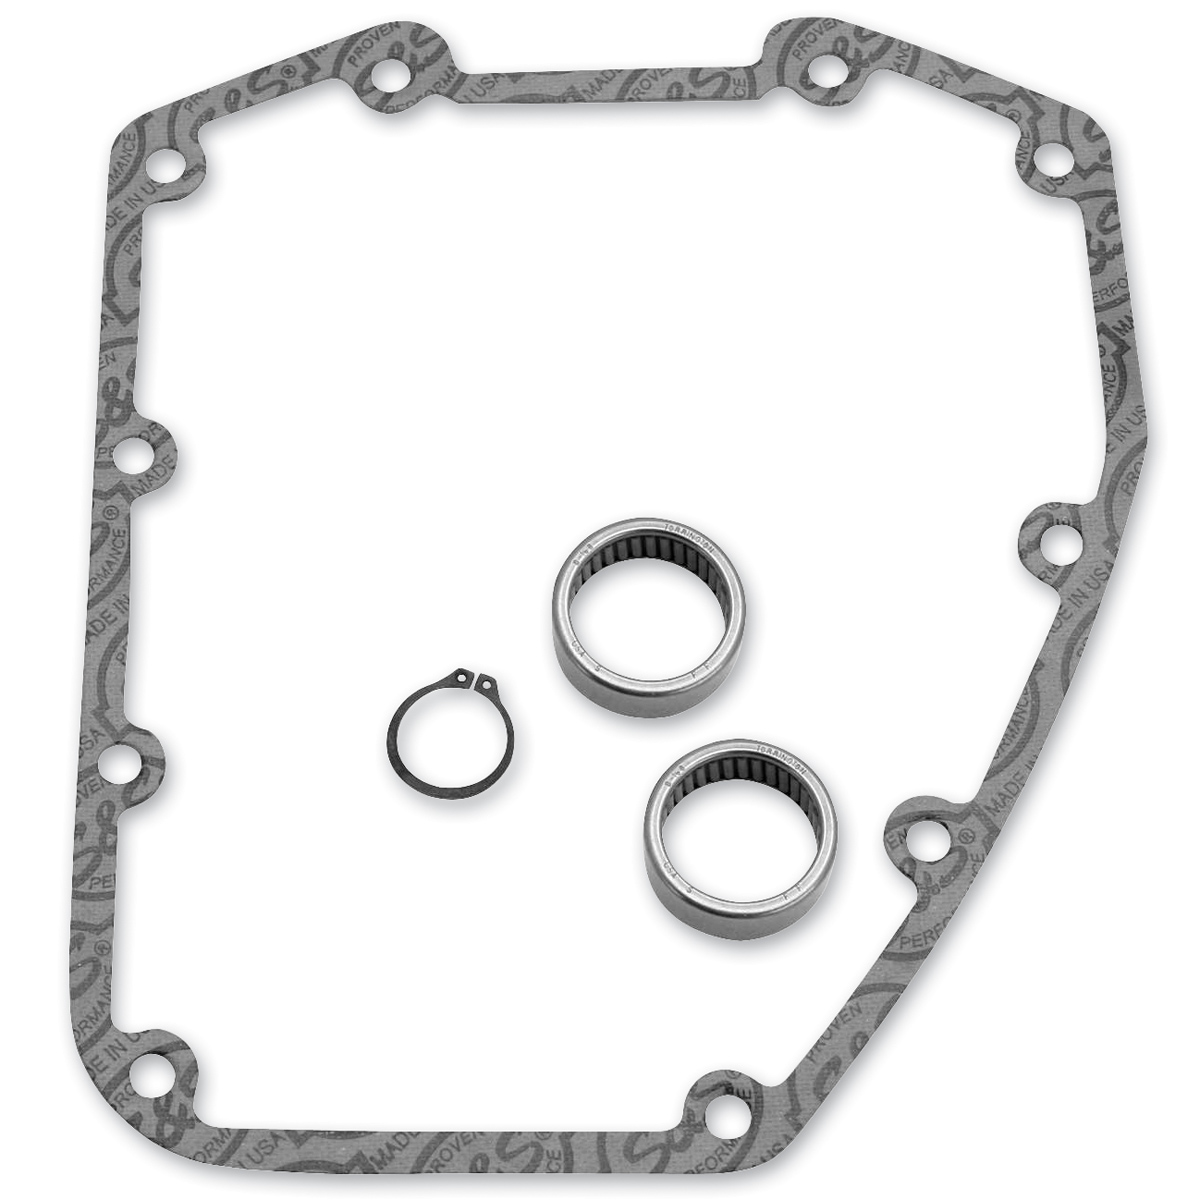 S Amp S Cycle Chain Drive Camshaft Replacement Installation Kit